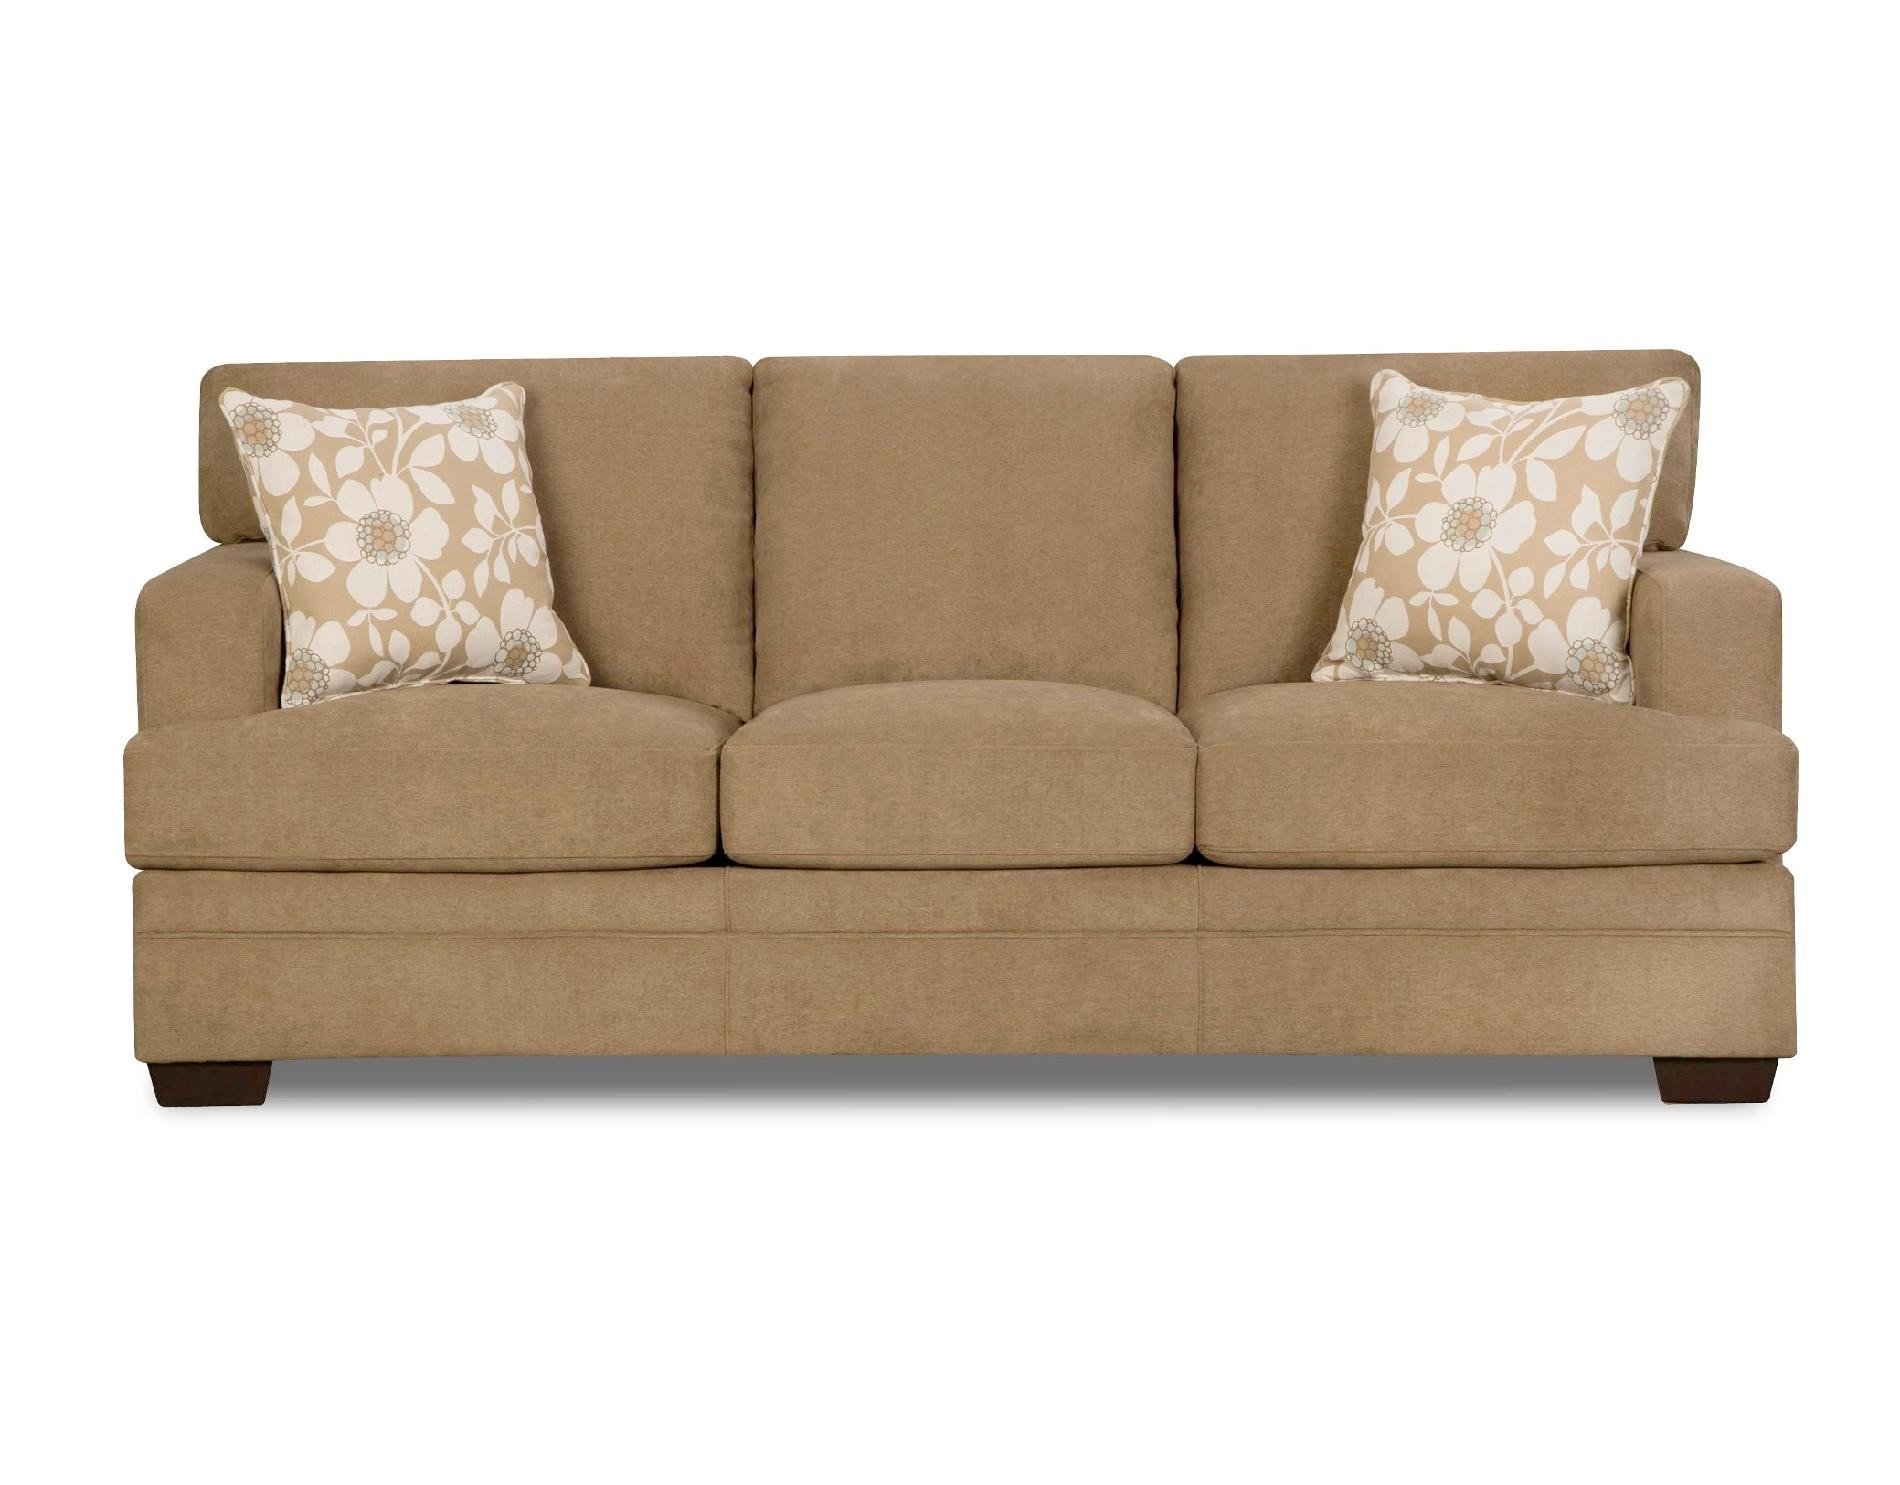 Sears Sleeper sofa Elegant sofas Collection